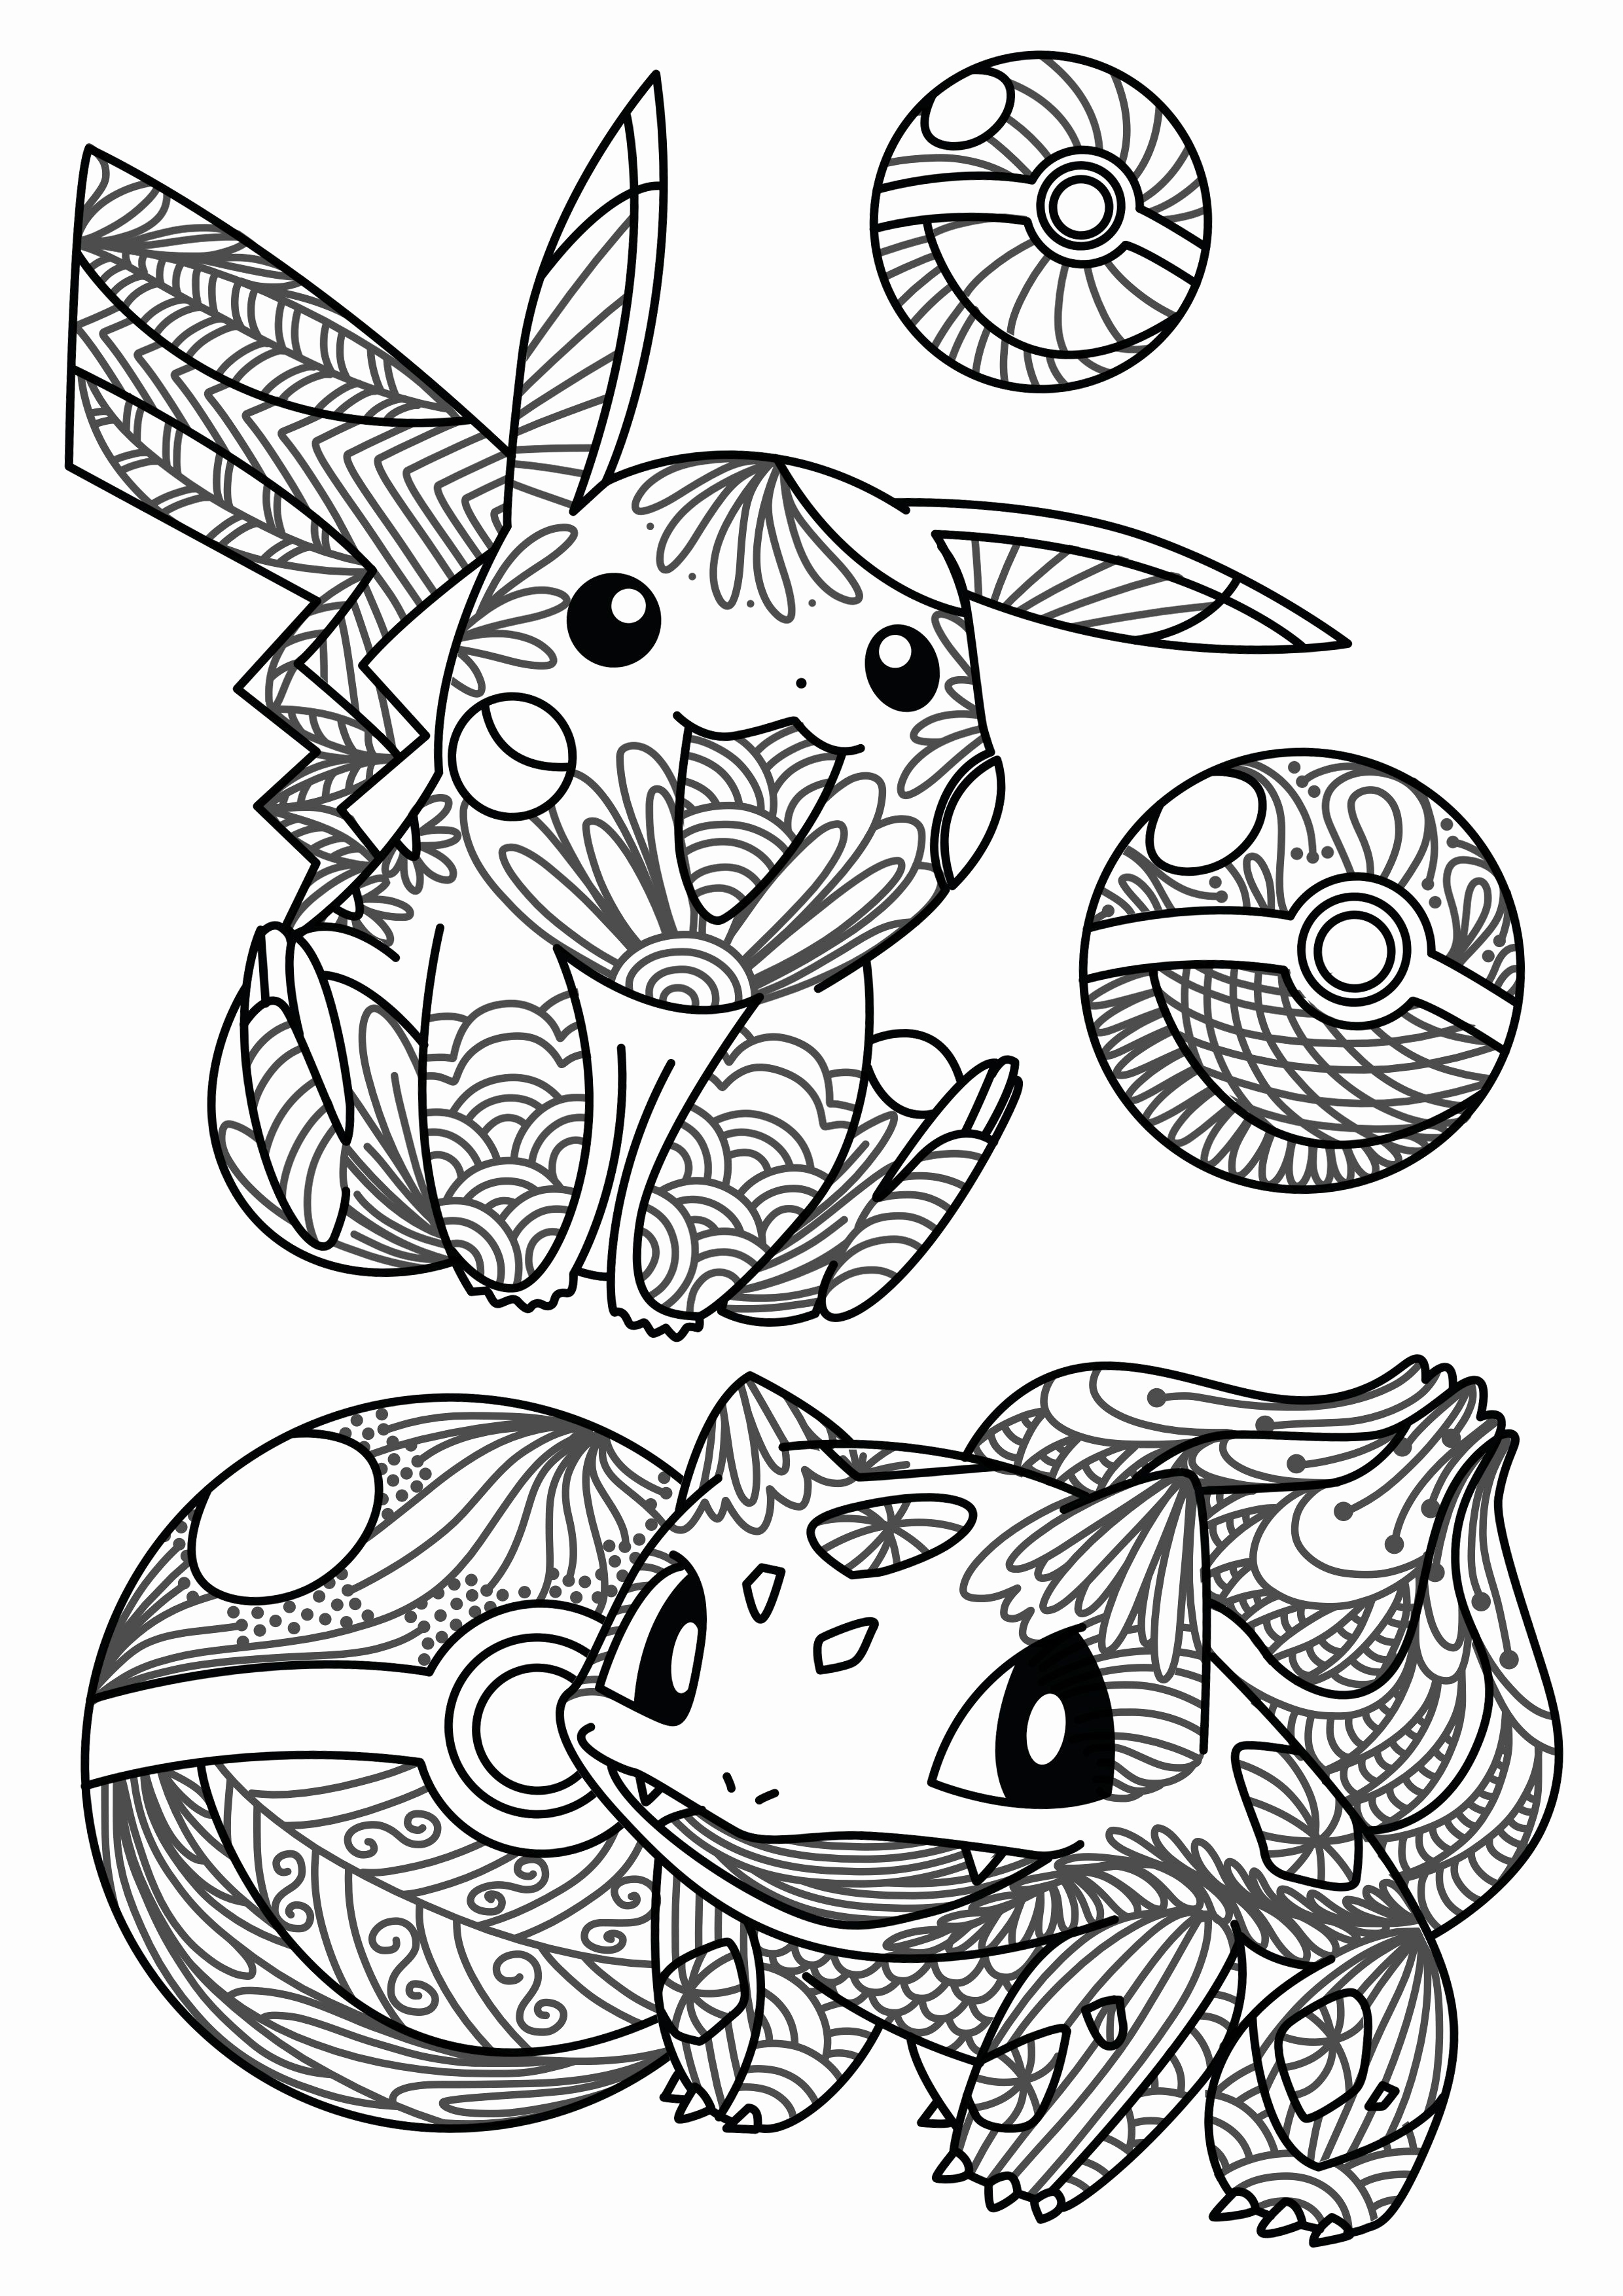 color pokemon 130 latest pokemon coloring pages for kids and adults pokemon color